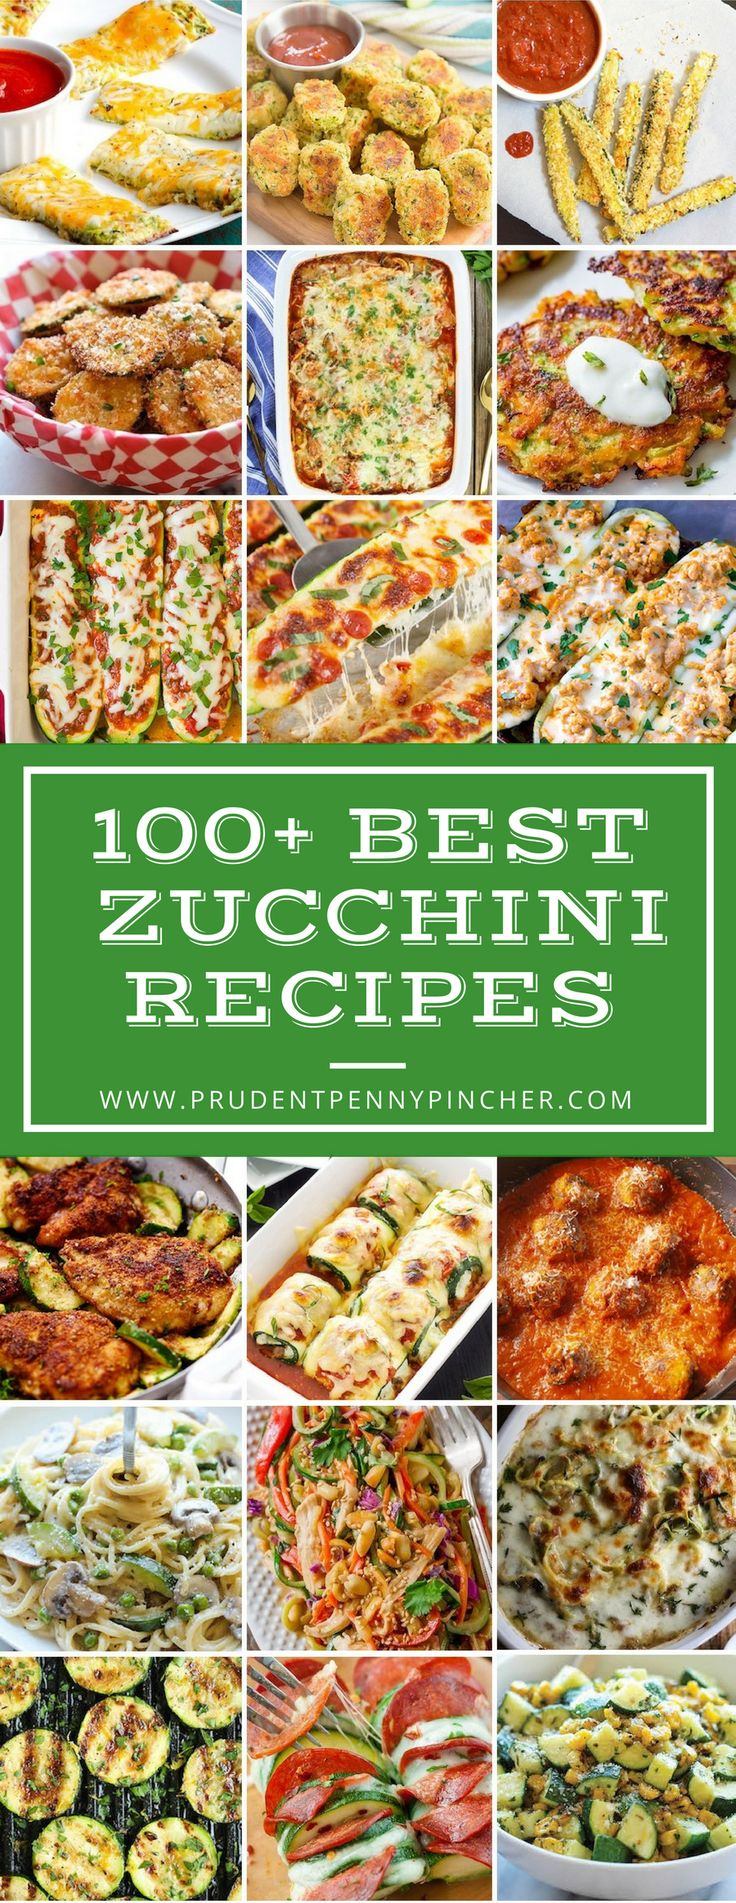 Have zucchini in your summer garden, but not sure what to make? Look no further, here is a round up of 100 of the best zucchini recipes on the internet! From zoodles to zucchini boats, there are many healthy dinner recipes here to choose from. There are even flavorful sides and delicious desserts included in …